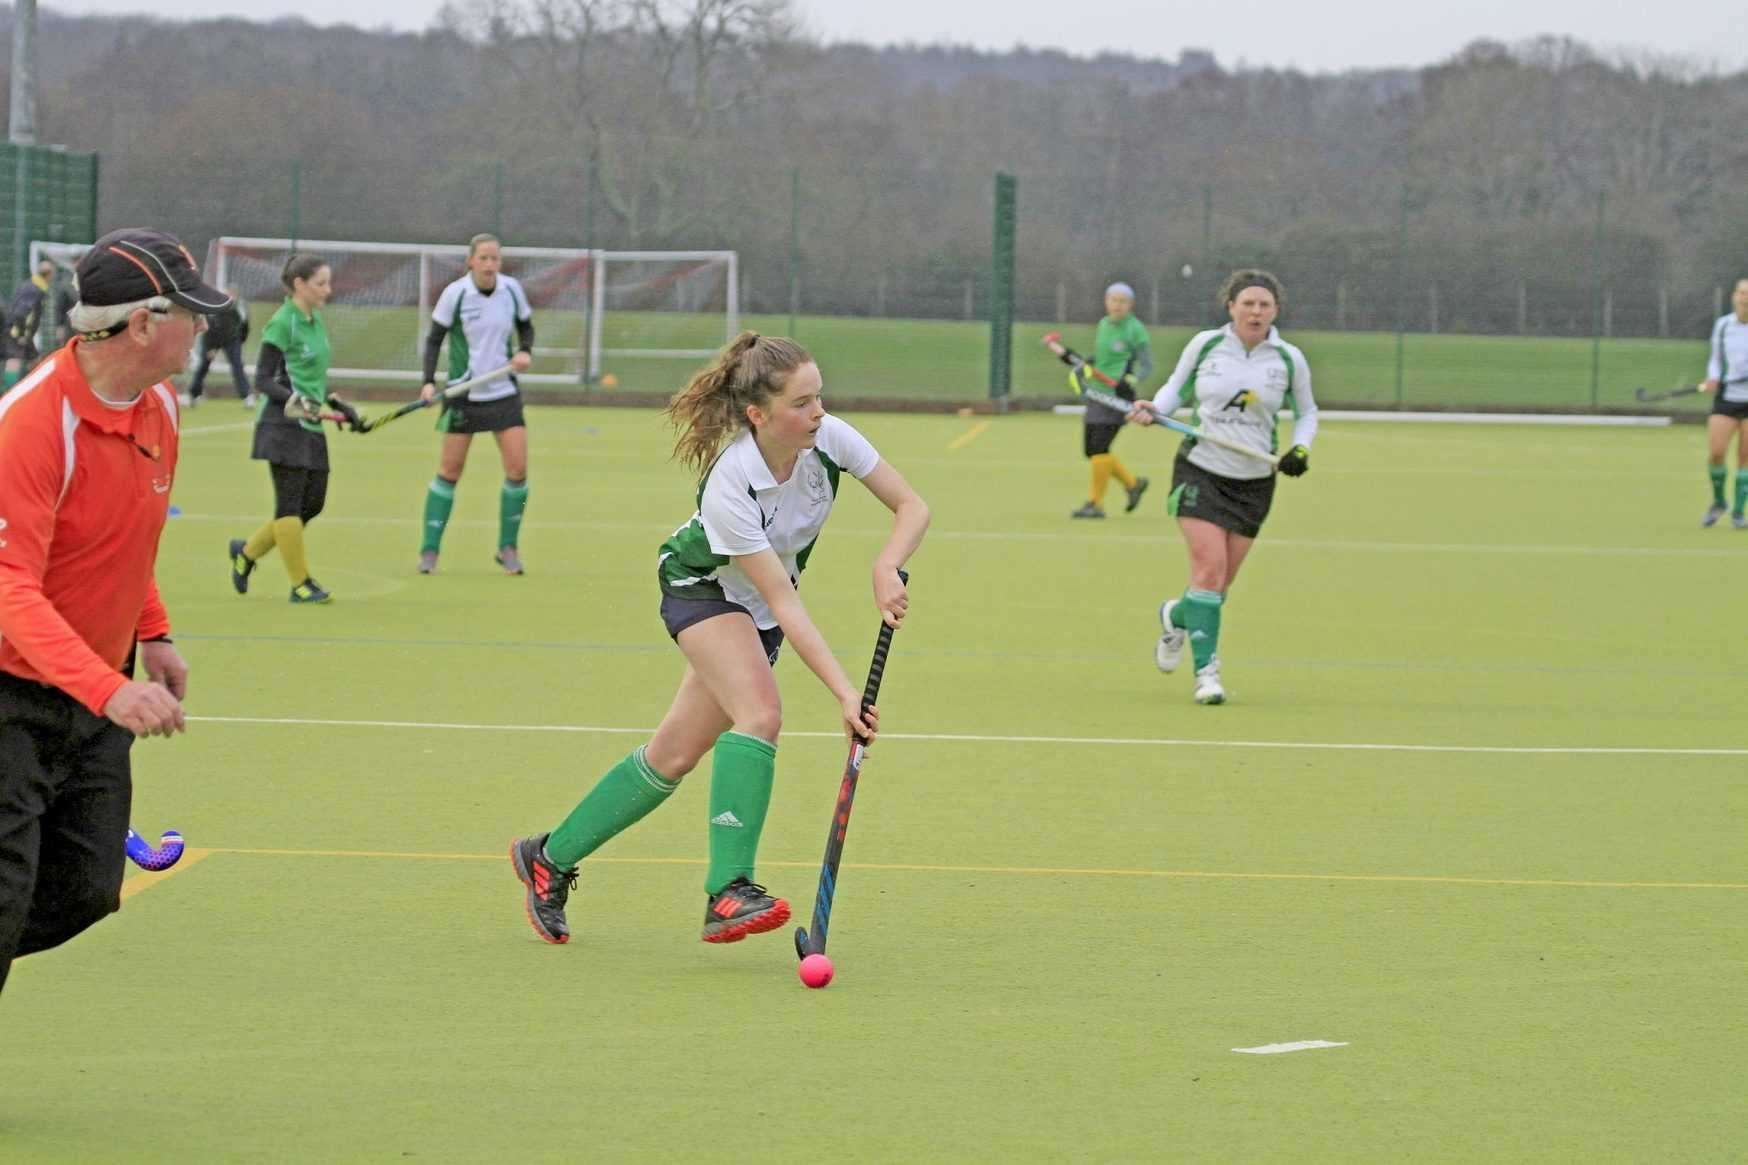 New Forest Hockey Club's teenage star Frankie Robertson was Player of the Match against Aldershot